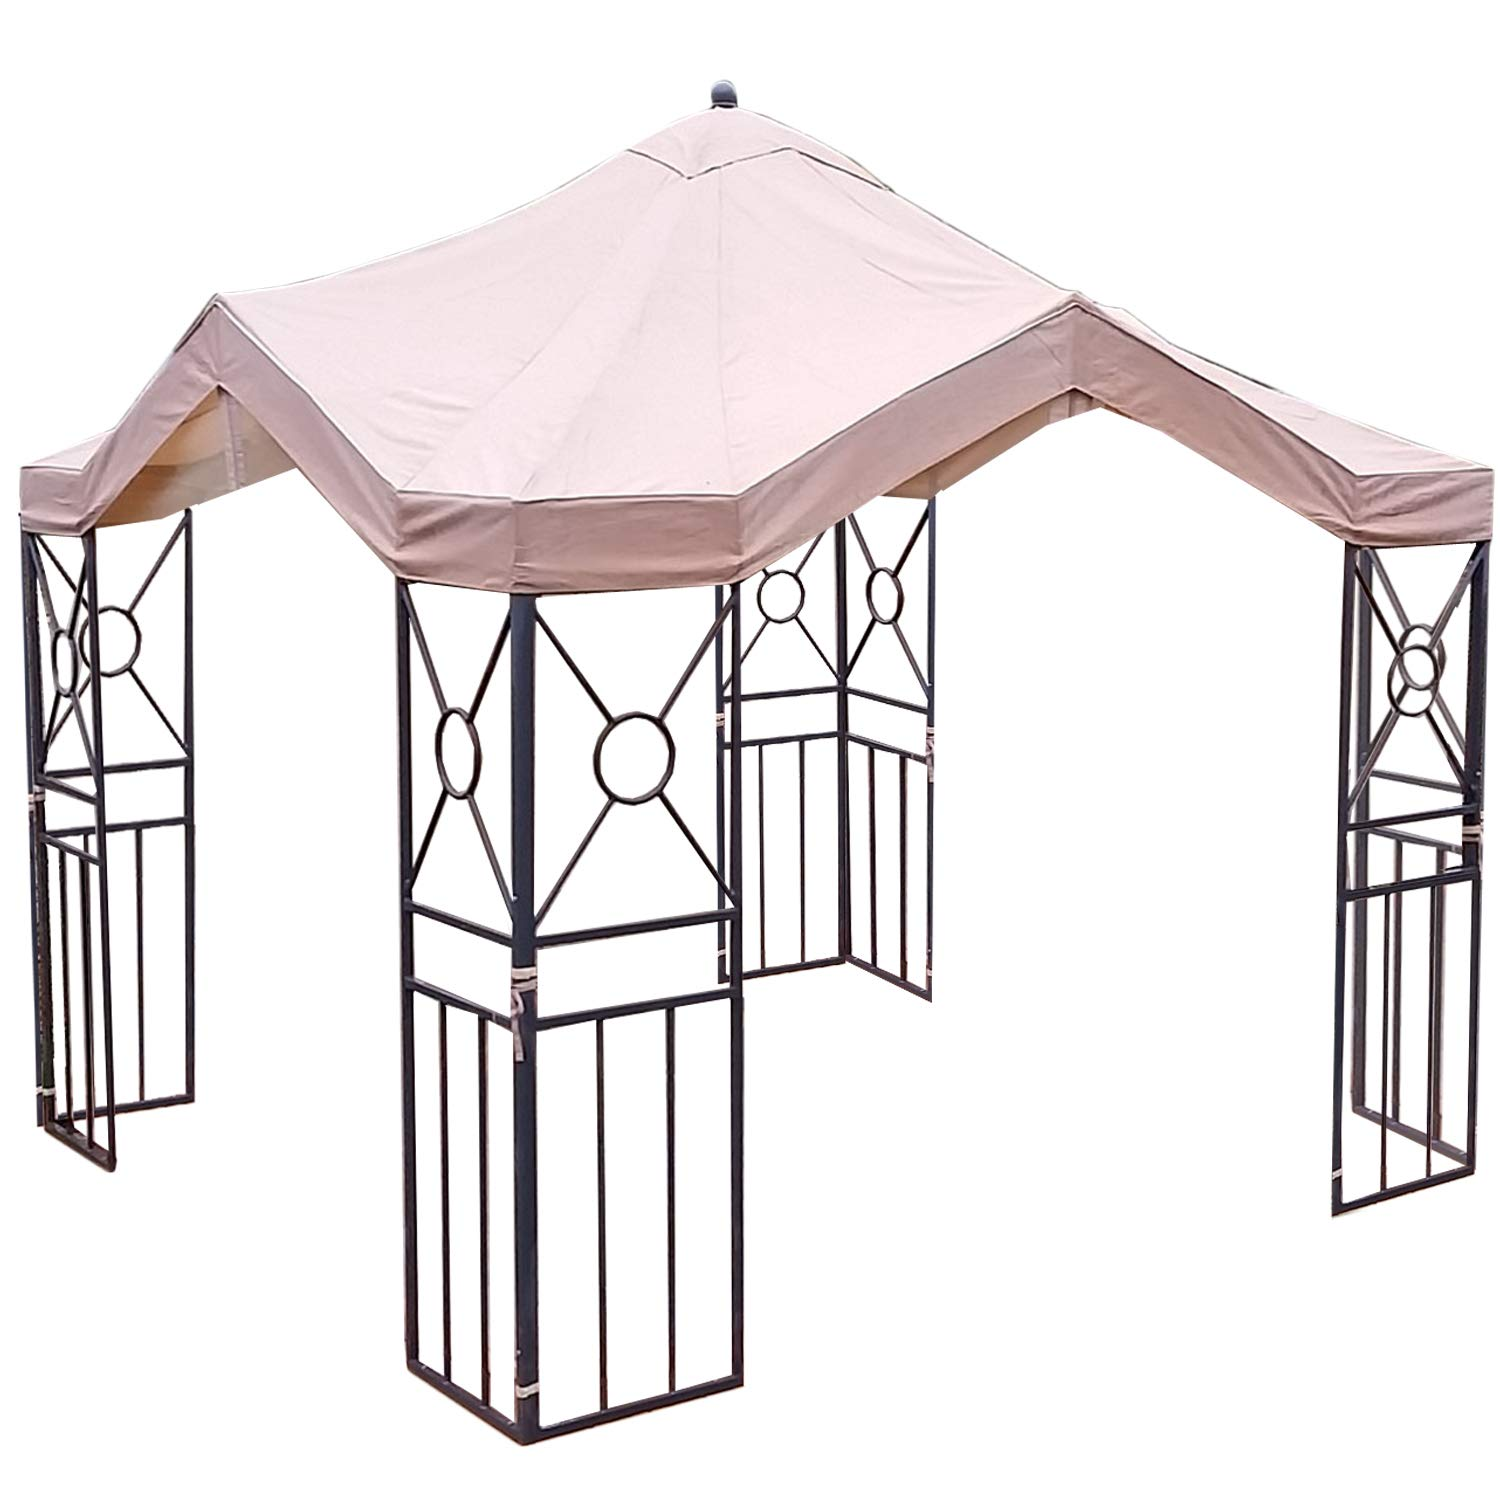 Garden Winds Replacement Canopy for Deluxe Pagoda Gazebo, RipLock 350